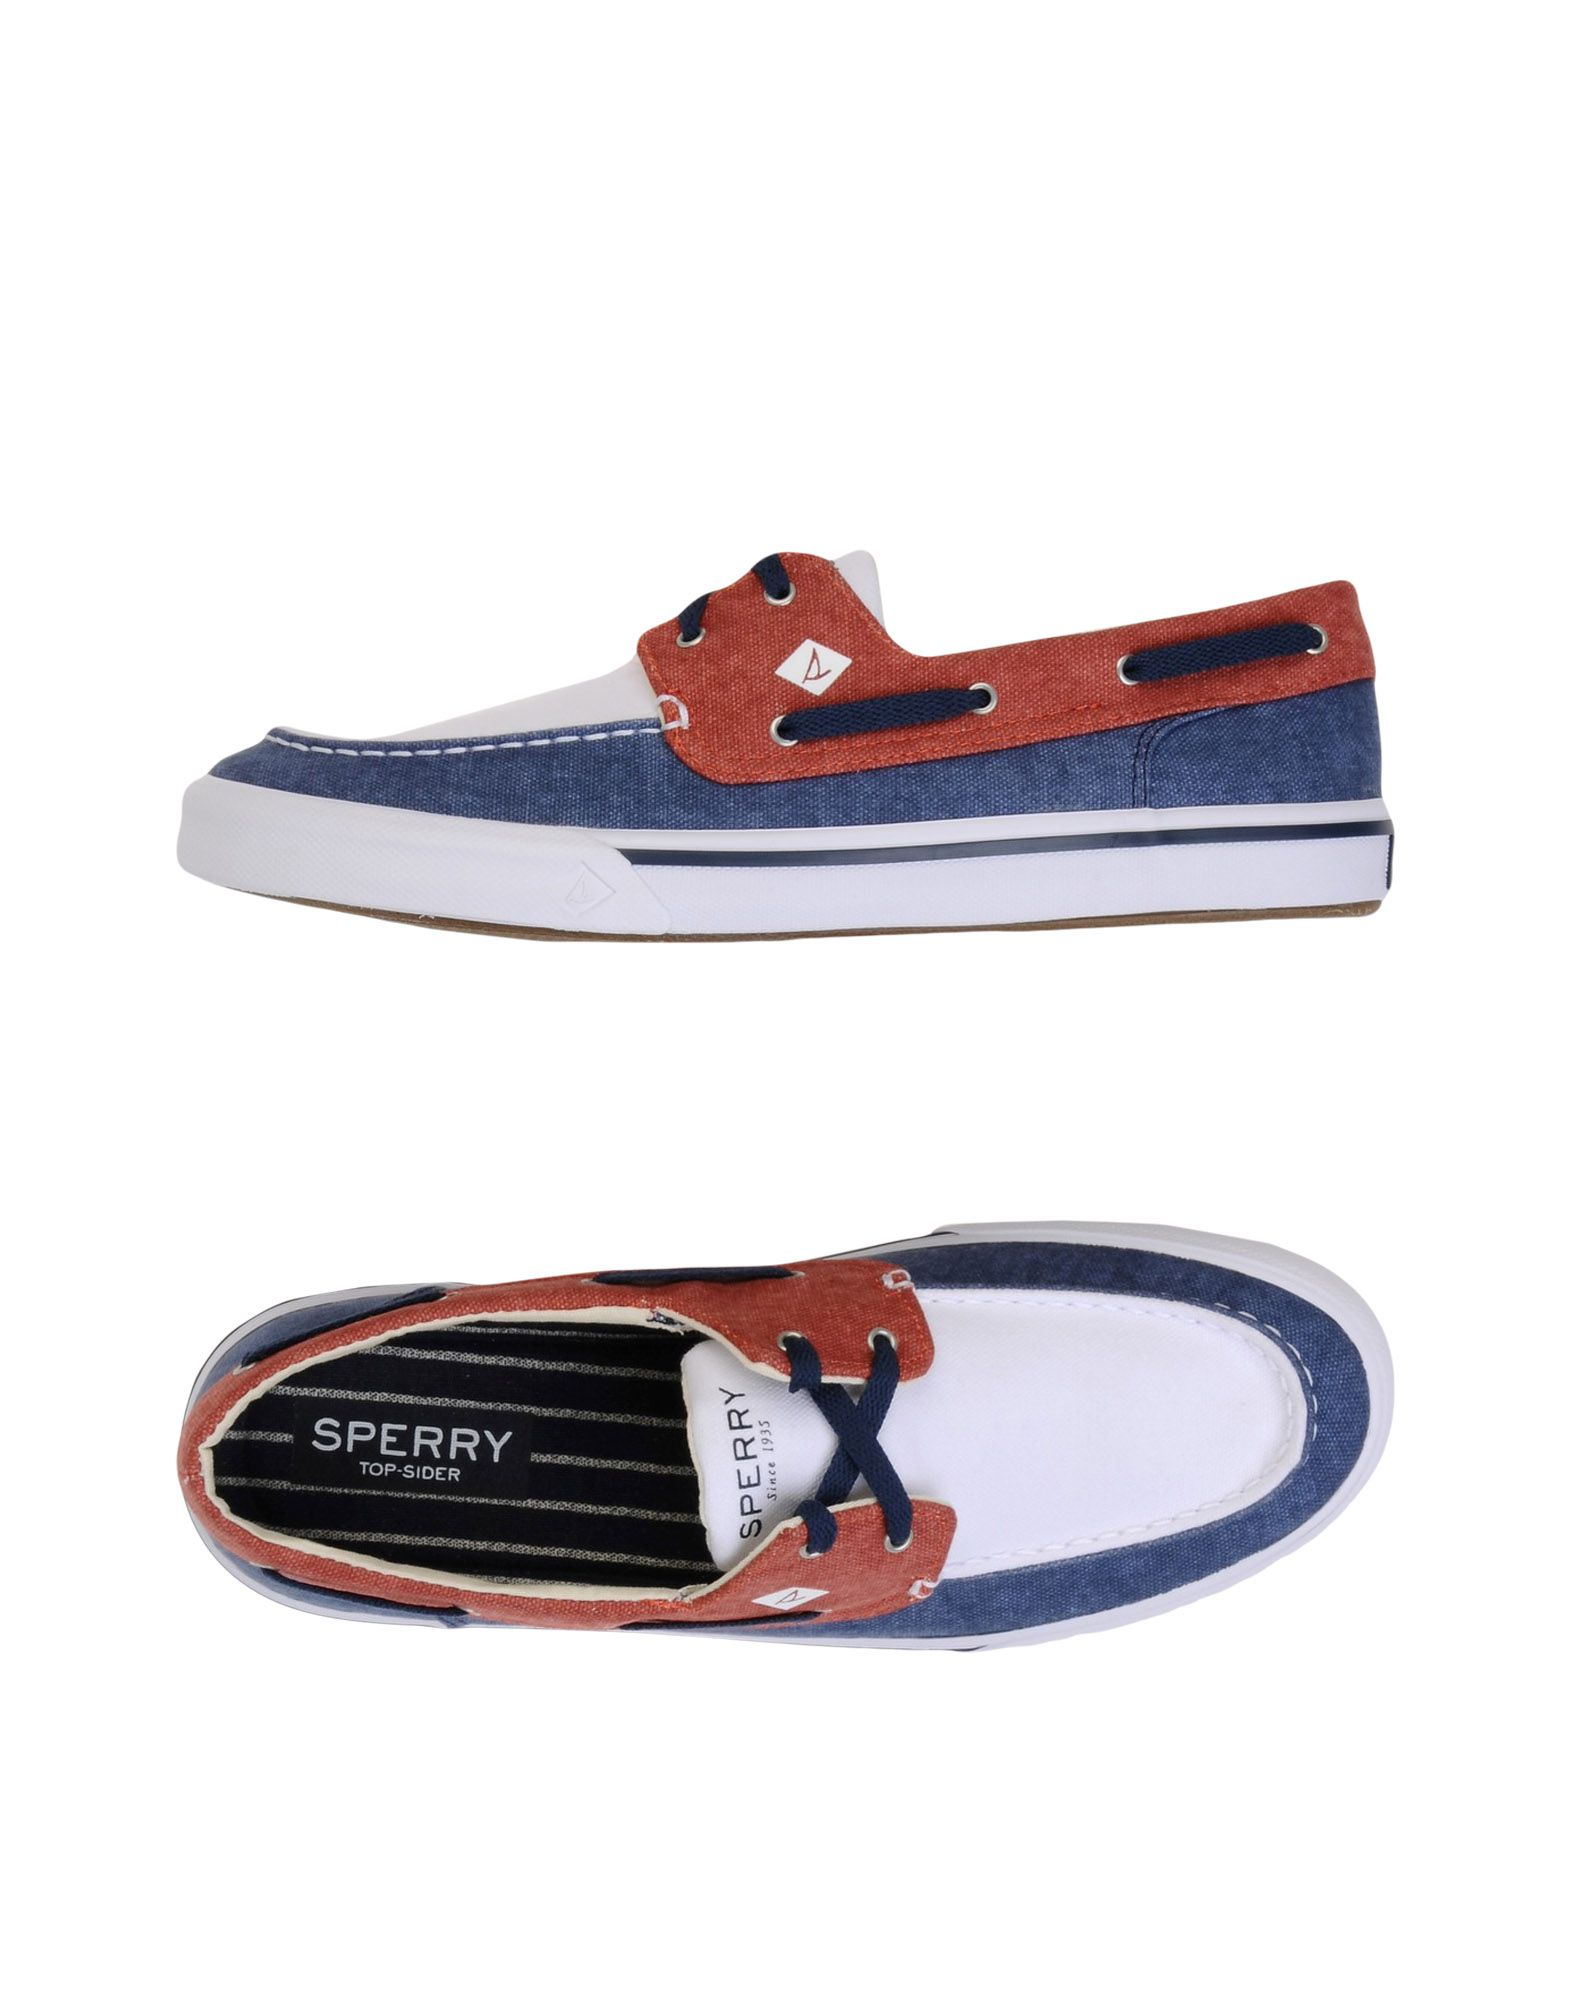 Mocassino Sperry Top-Sider Striper Ii Boat Washed - Uomo - 11472295LM